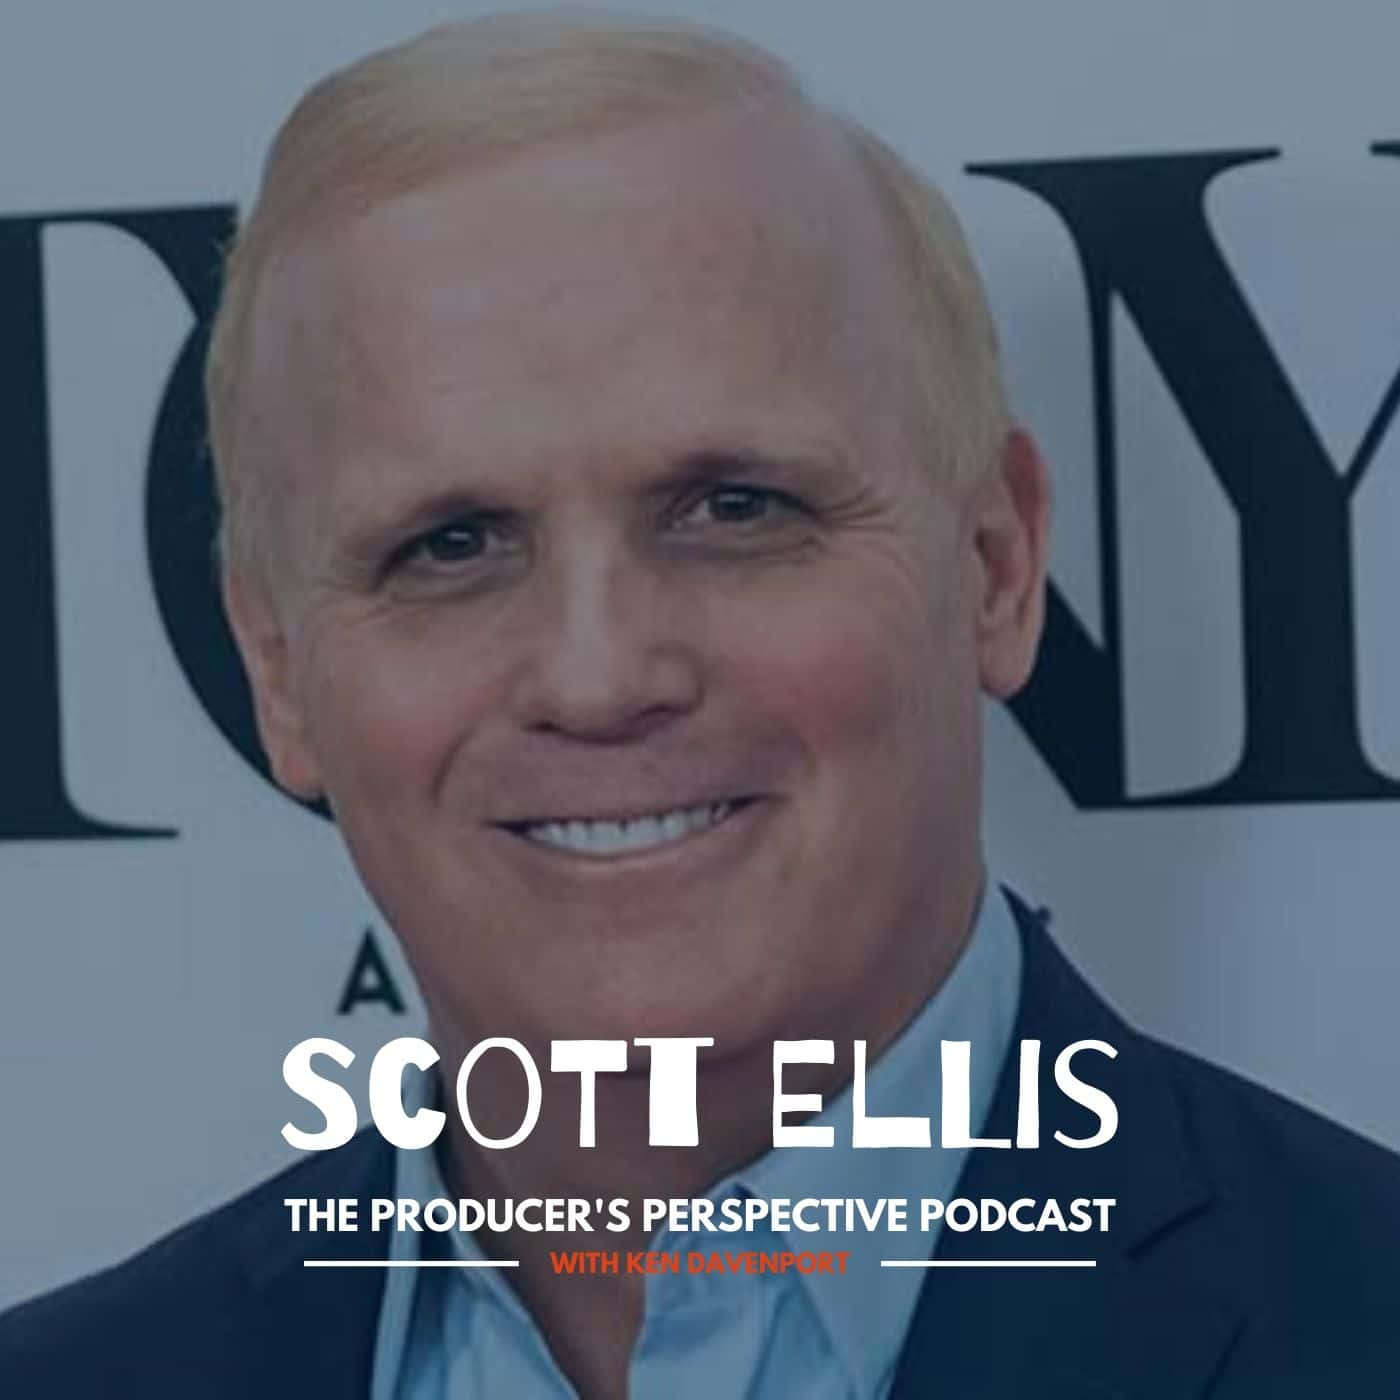 Ken Davenport's The Producer's Perspective Podcast Episode 115 - Scott Ellis